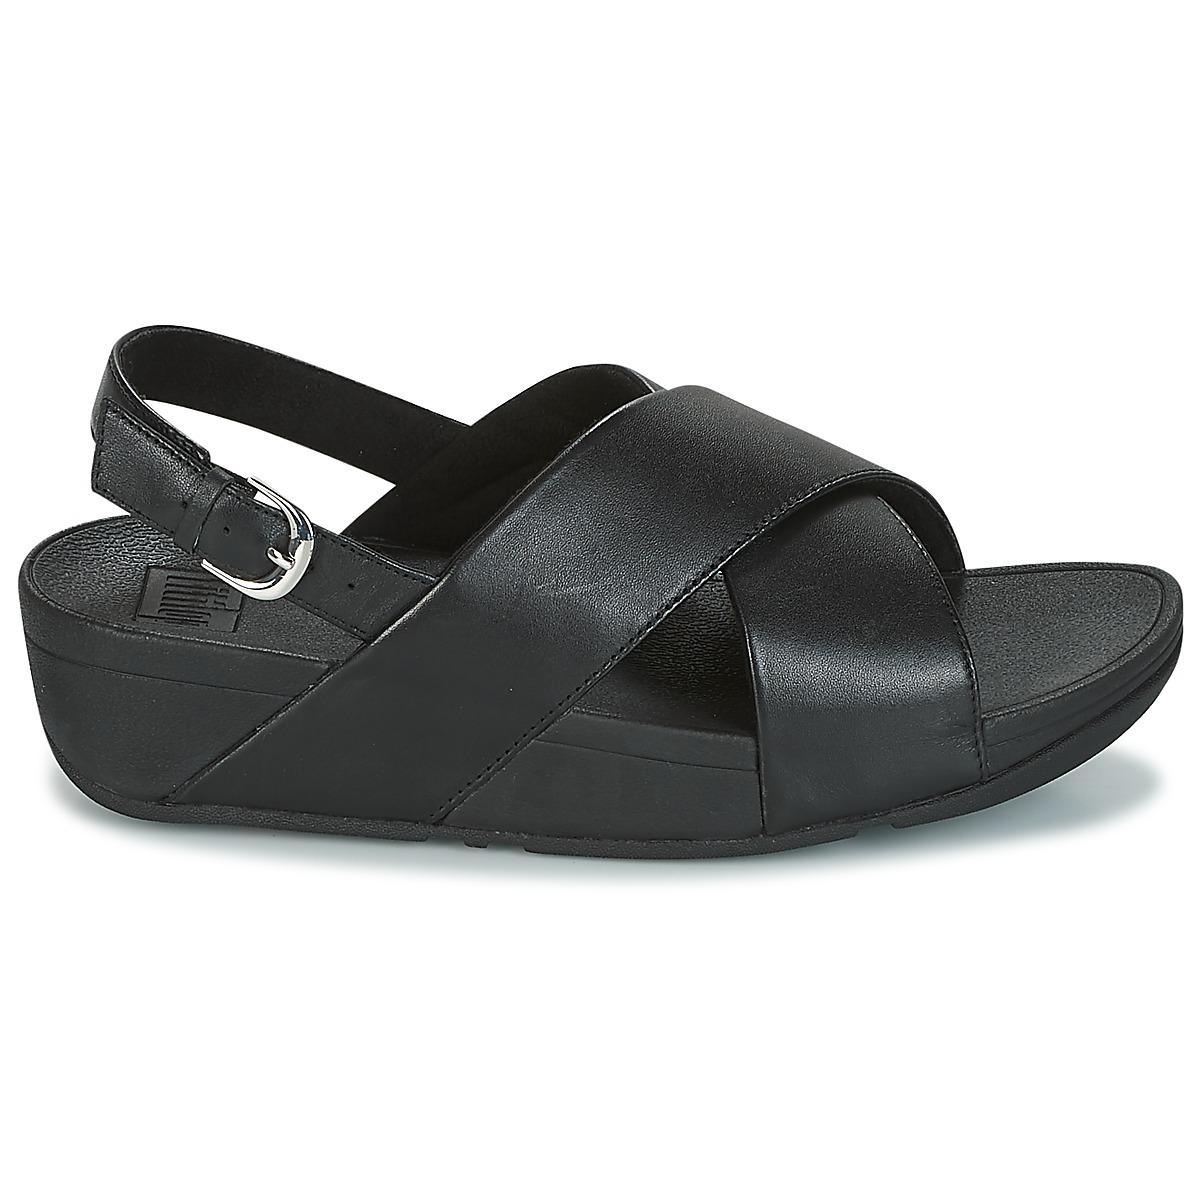 4361a59054a0 Fitflop - Black Lulu Cross Back-strap Sandals - Leather Sandals - Lyst.  View fullscreen